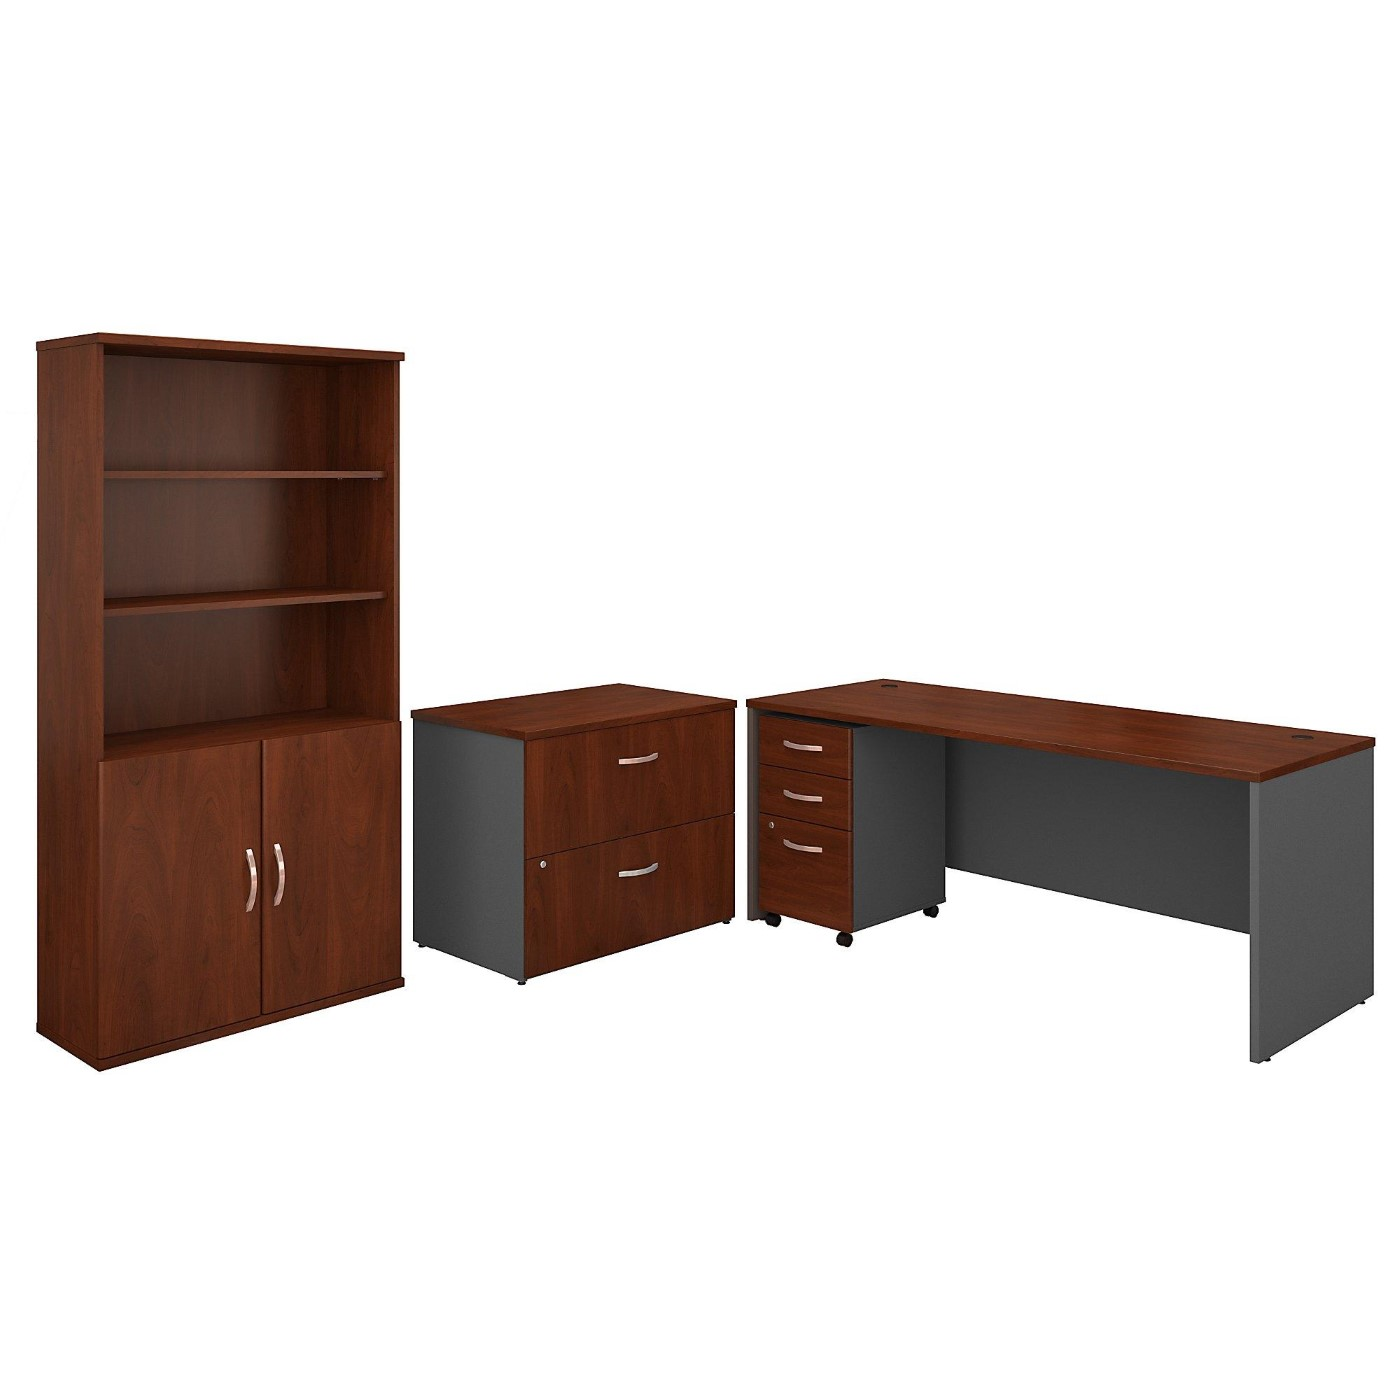 </b></font><b>BUSH BUSINESS FURNITURE SERIES C 72W OFFICE DESK WITH BOOKCASE AND FILE CABINETS. FREE SHIPPING</b></font>  VIDEO BELOW. </b></font></b>